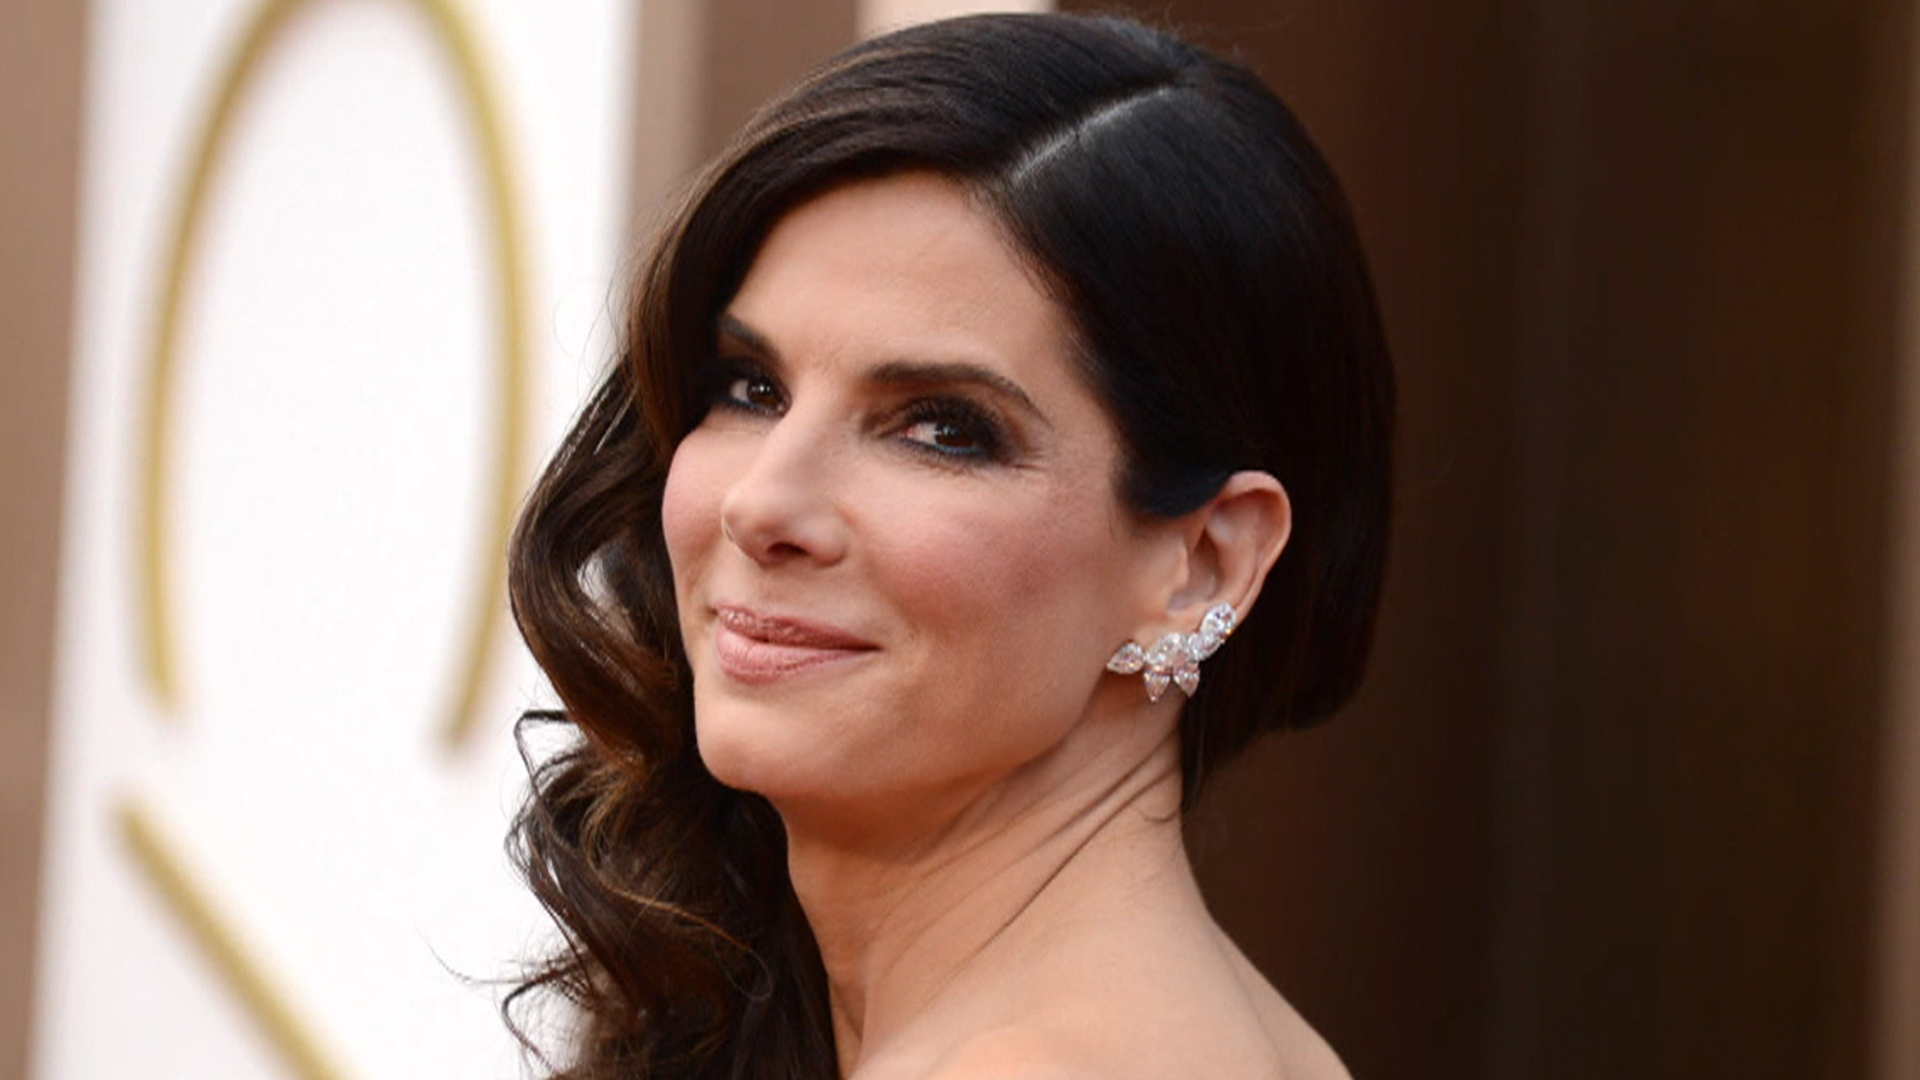 Suspect arrested in al... Sandra Bullock Arrest